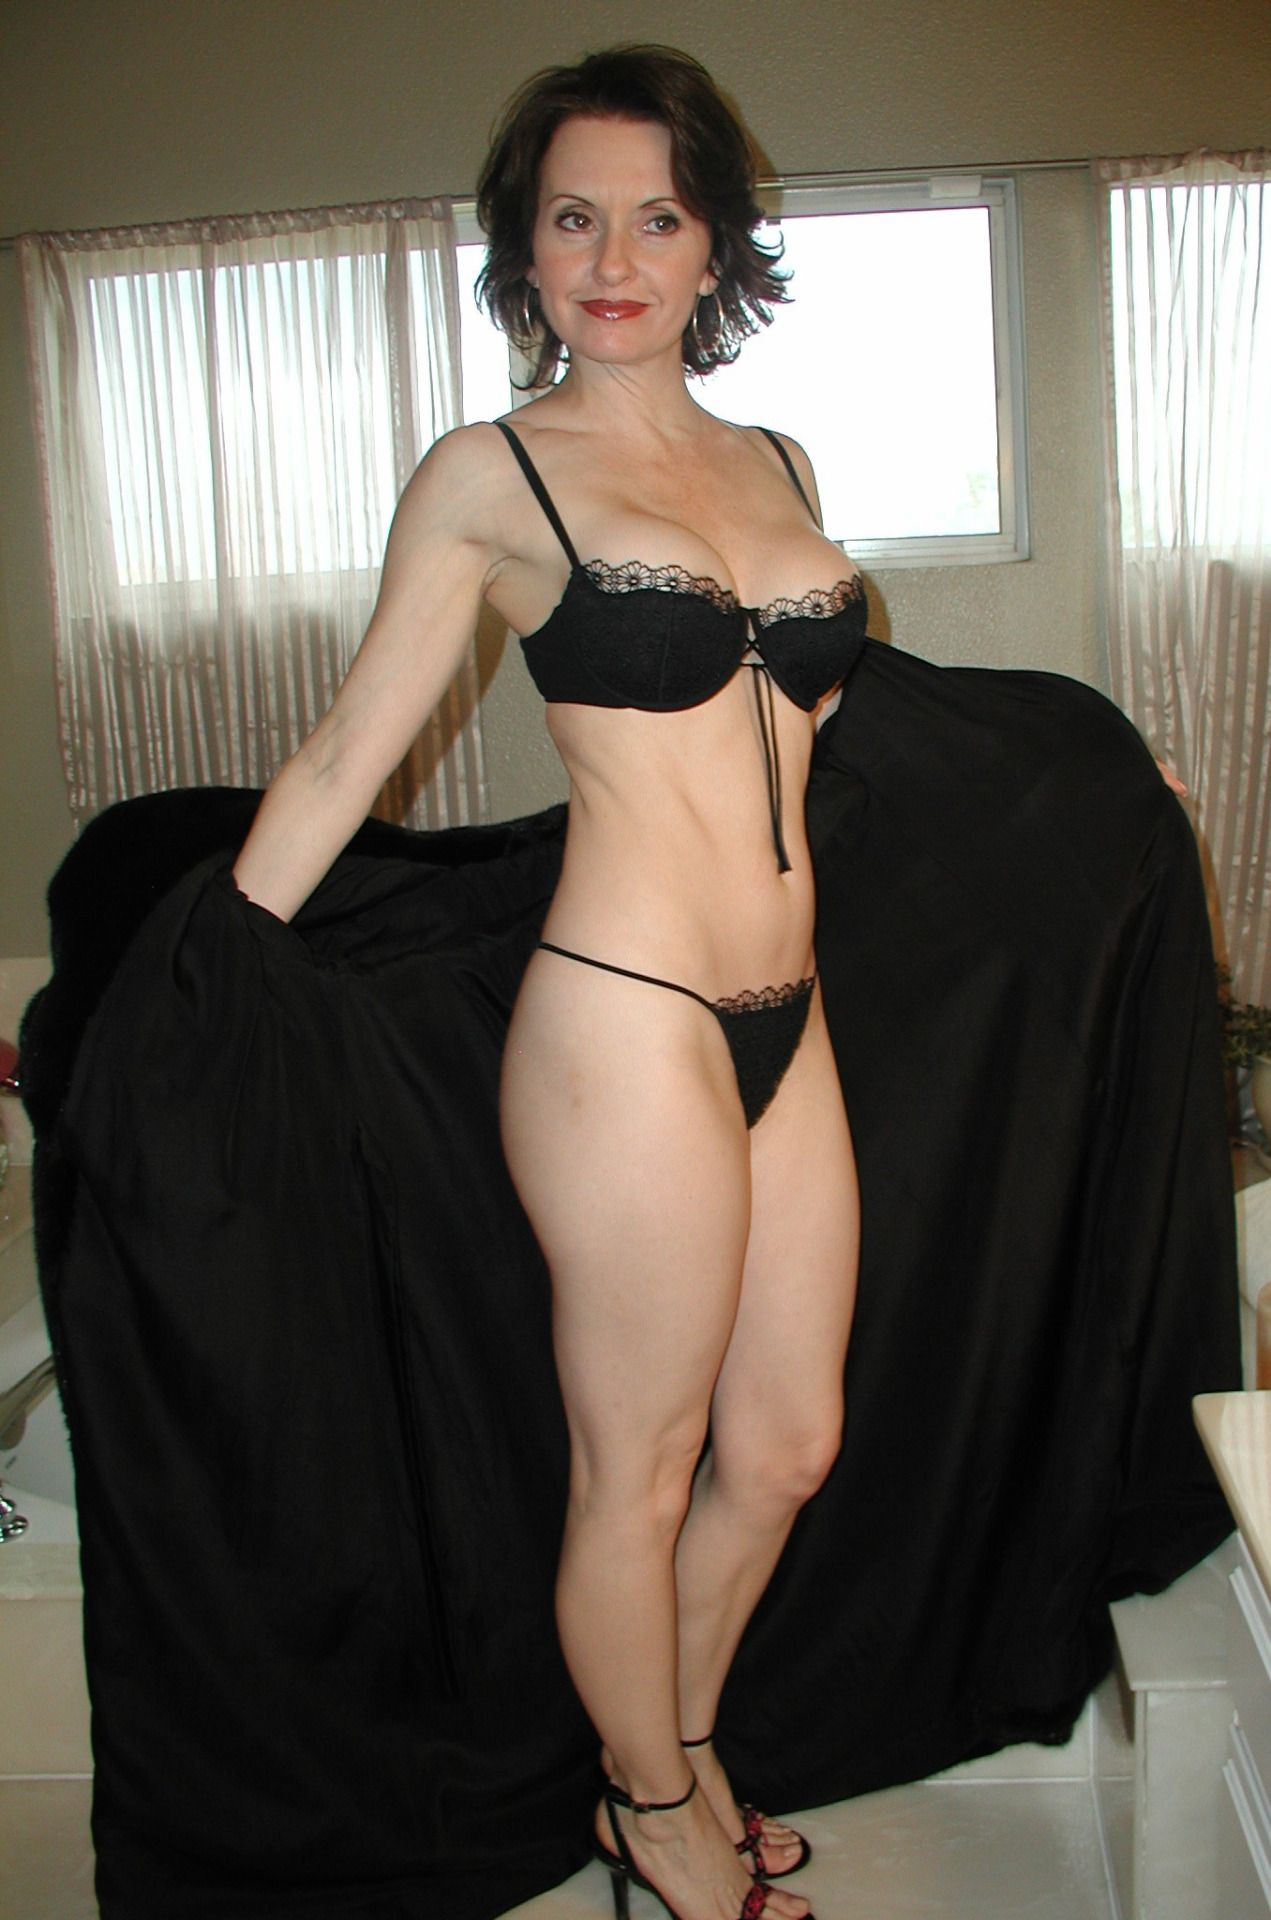 55 To 60 Brunette Woman Seeking Man